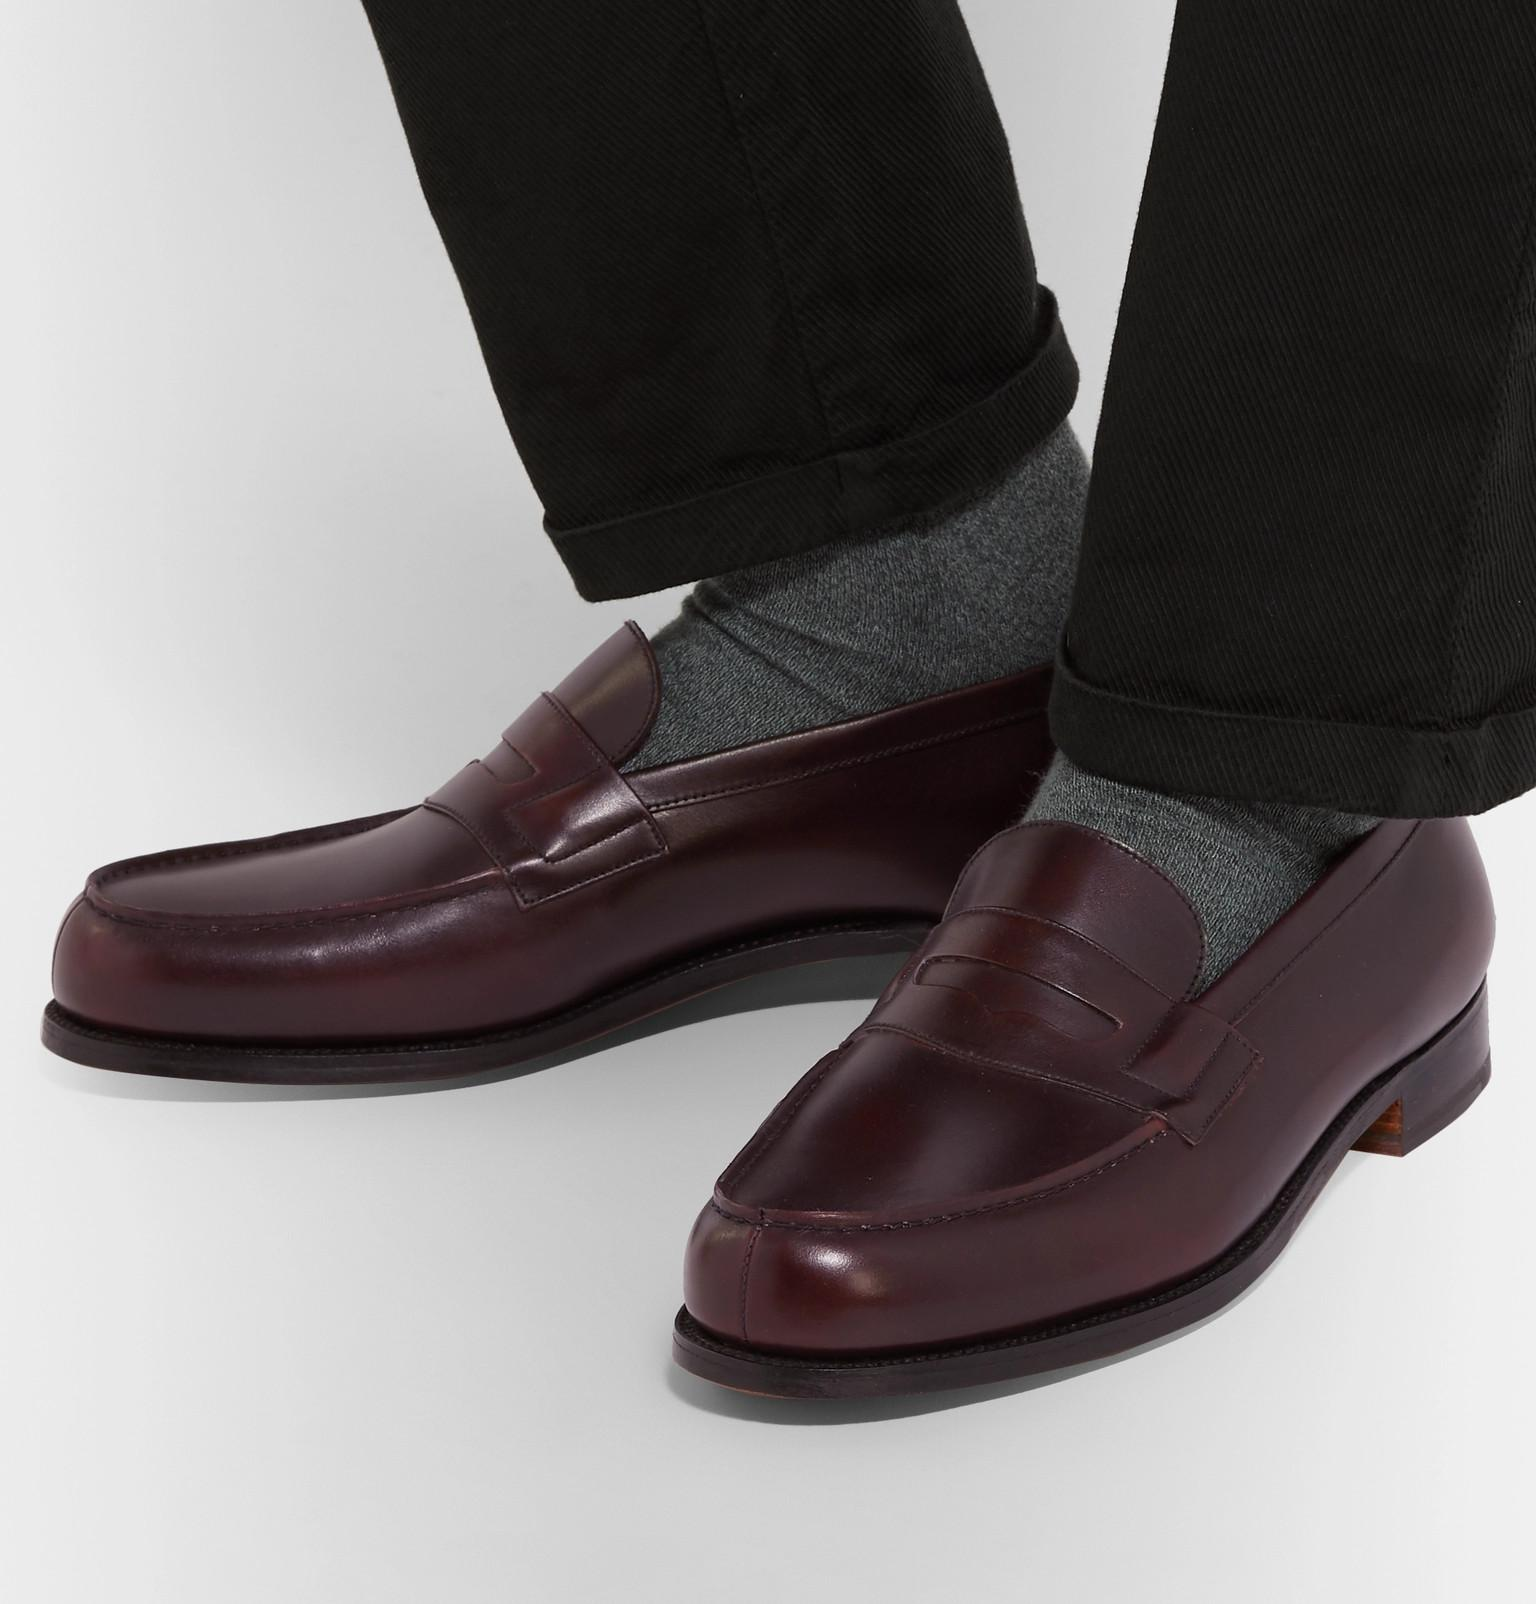 29df641a544 J.M. Weston - Purple 180 The Moccasin Burnished-leather Penny Loafers for  Men - Lyst. View fullscreen